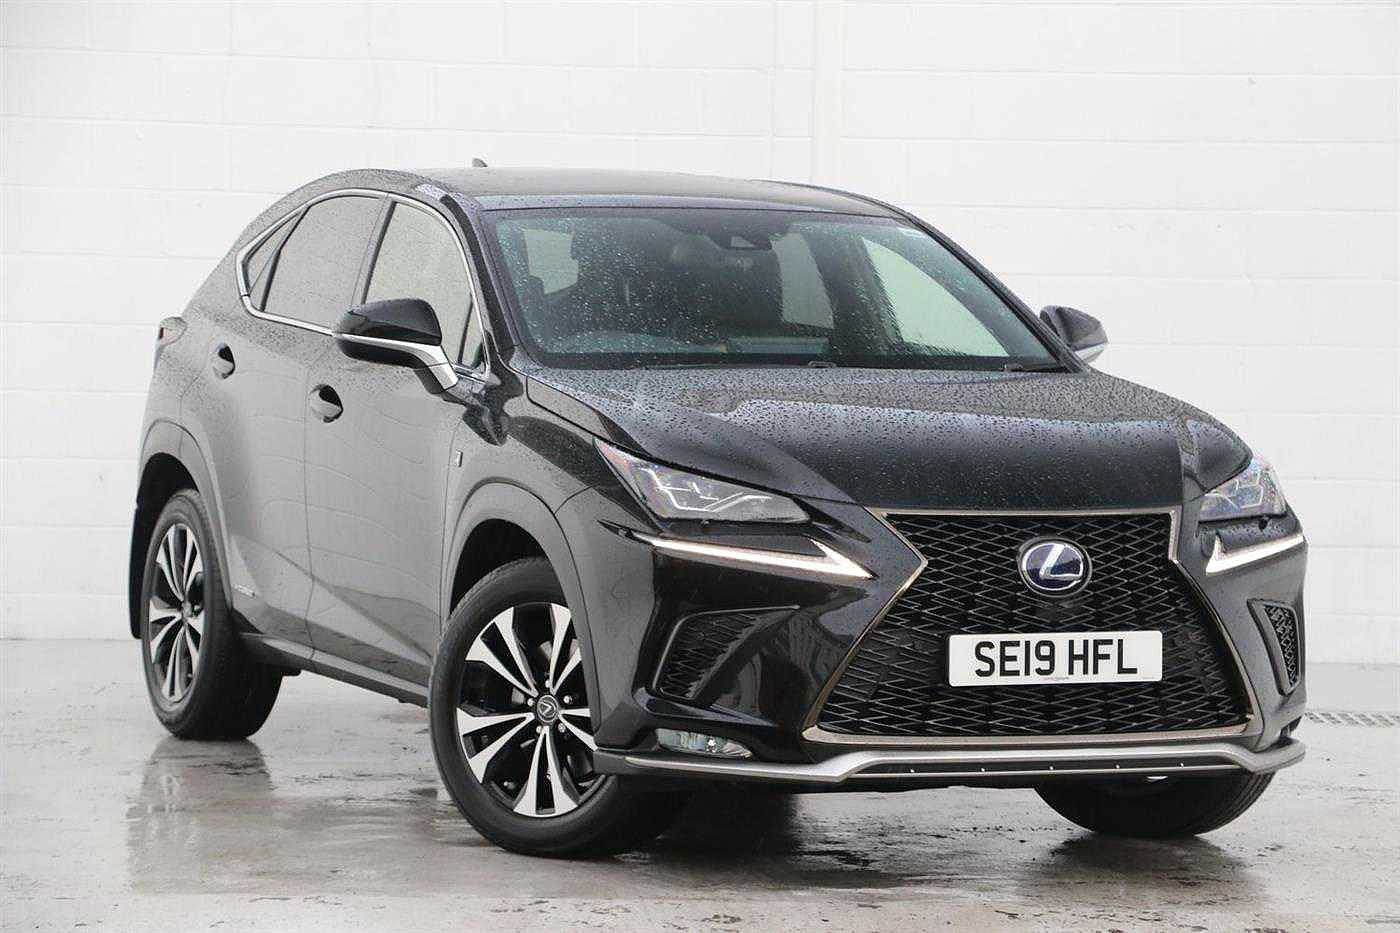 Used 2019 NX 300h 300h 2.5 F-Sport 5dr CVT [Premium Pack/leather]